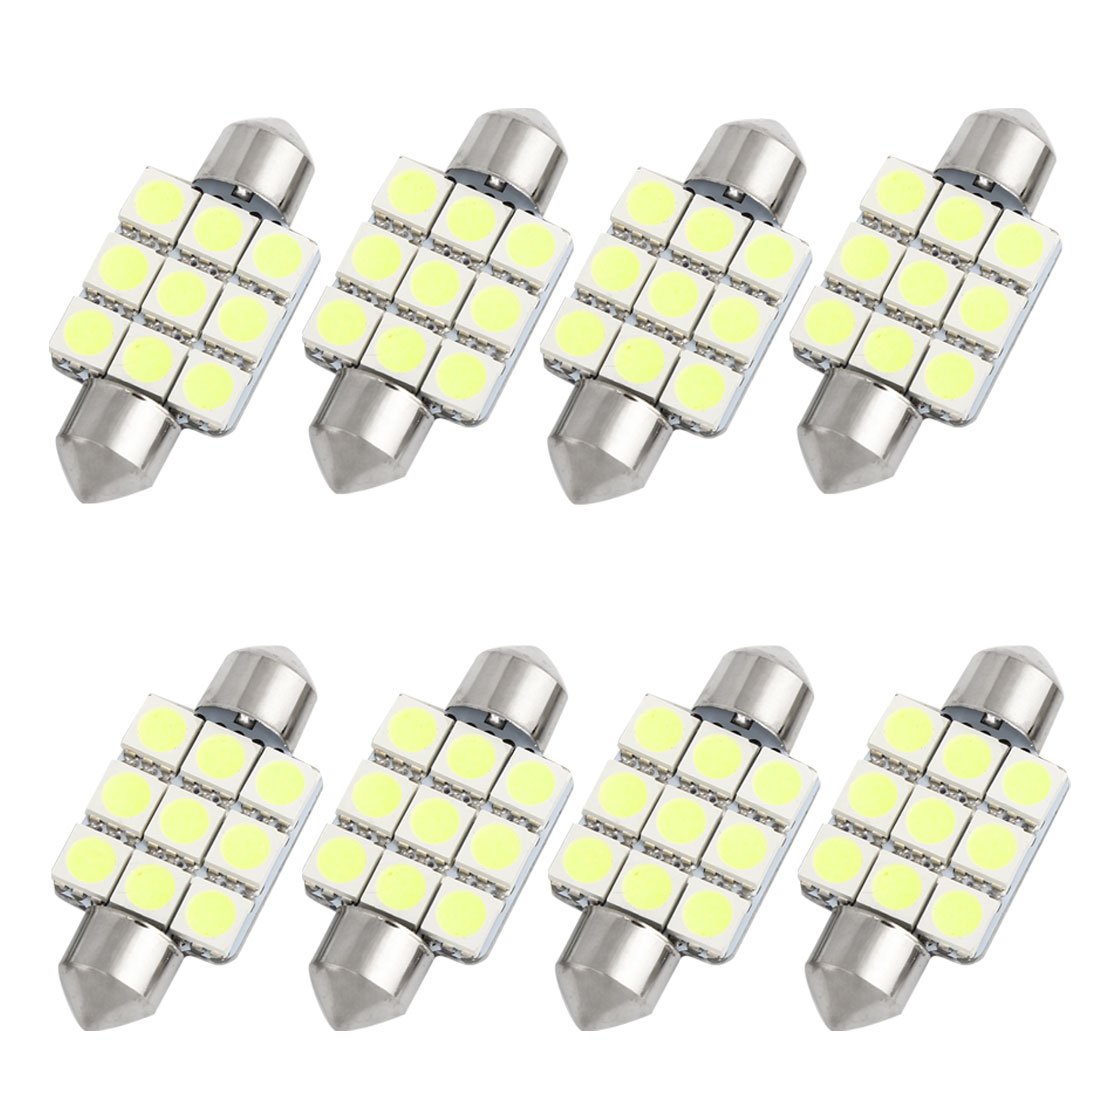 8pcs 36mm White 9 LED 5050 SMD Festoon Dome Light Lamp DC 12V DE3423 DE3425 Internal